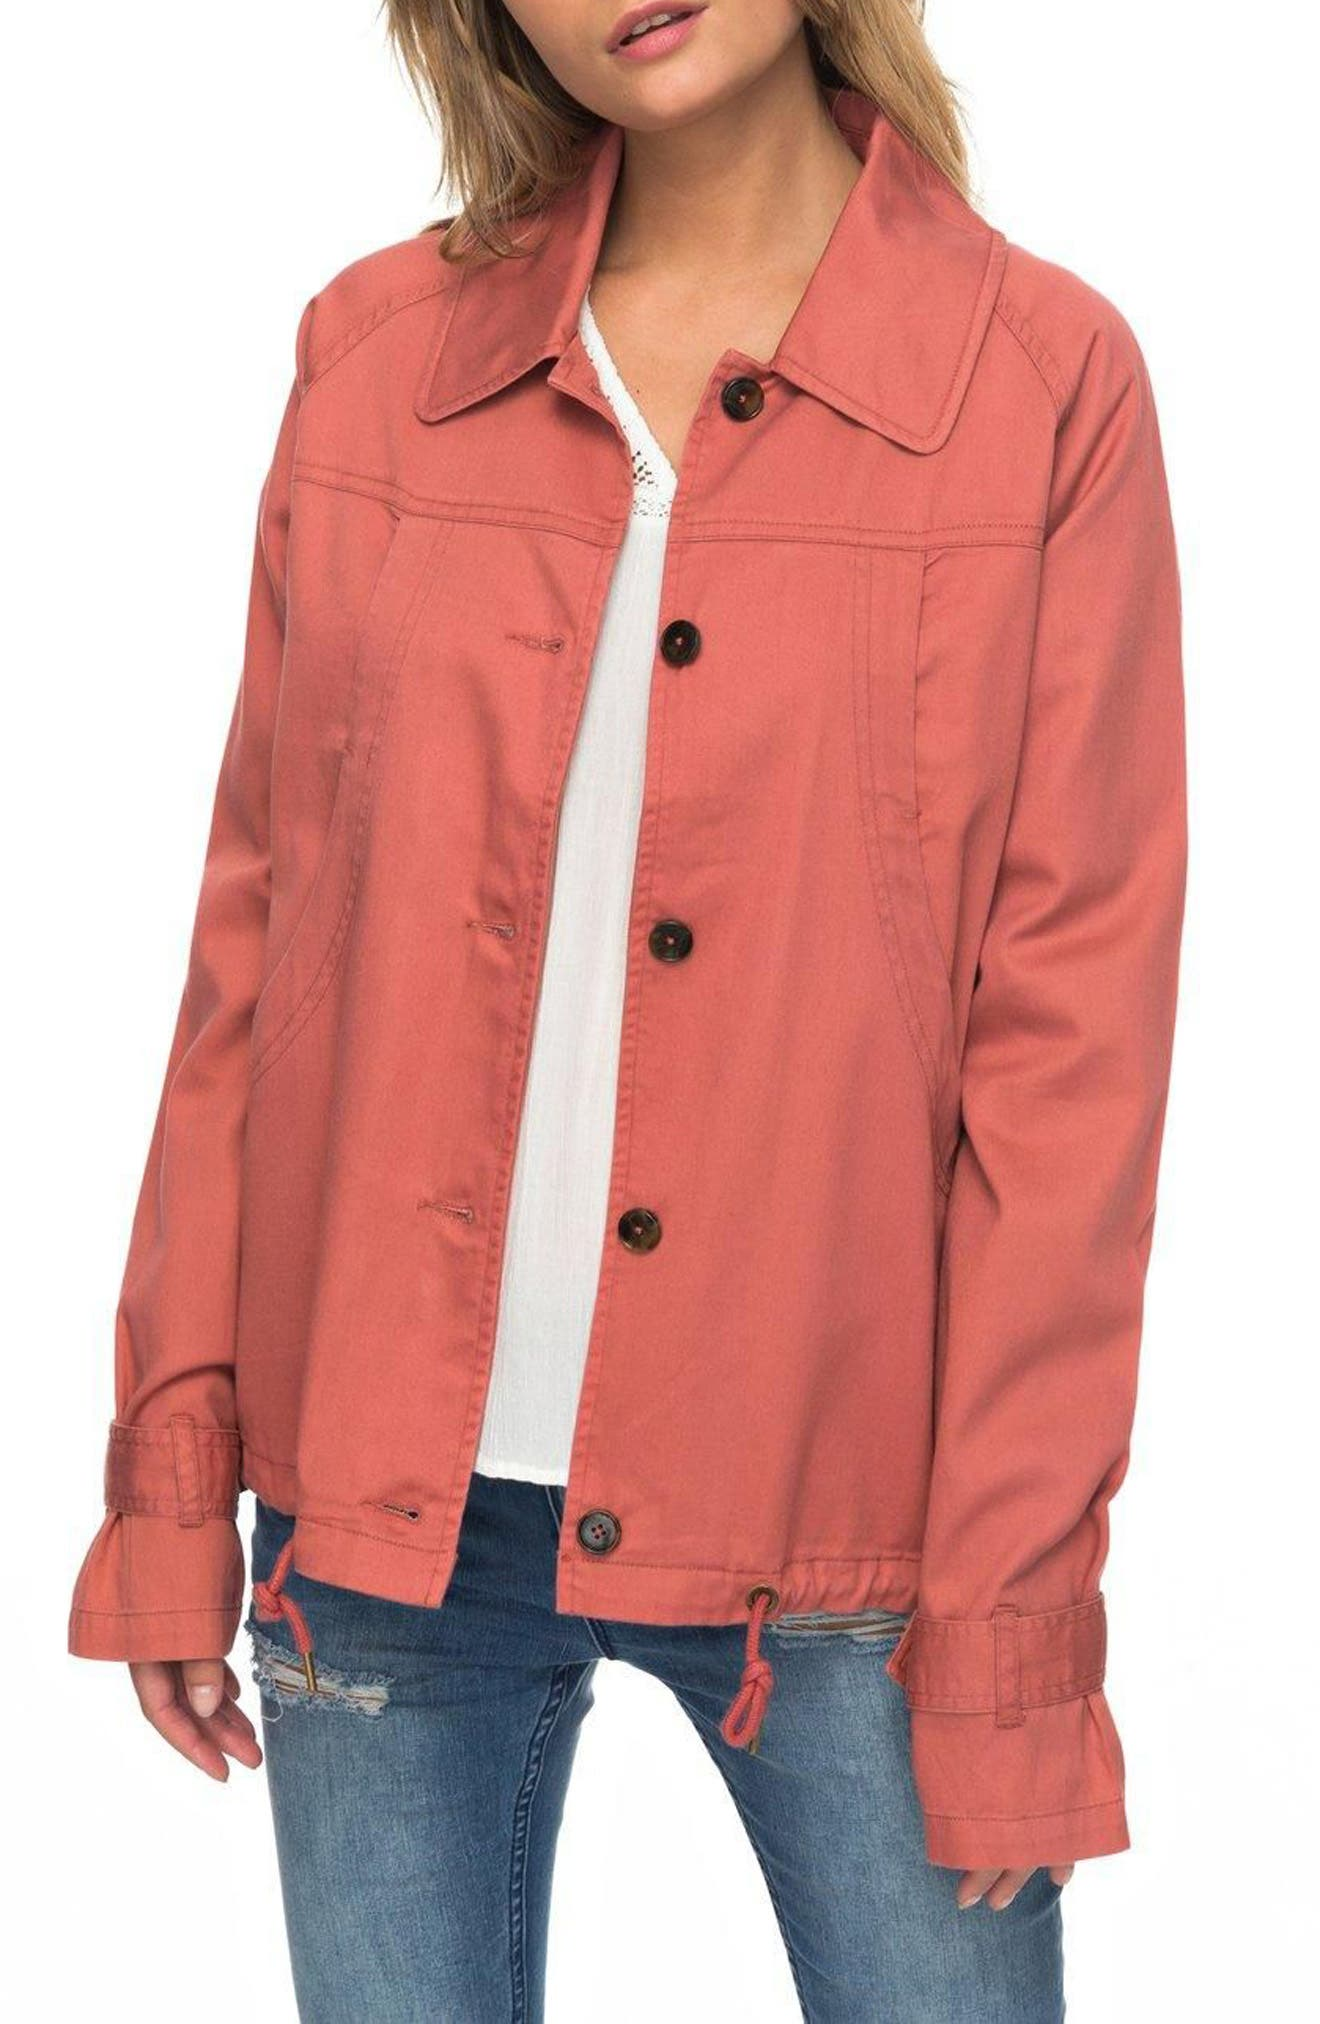 Dream Away Jacket,                         Main,                         color, Dusty Cedar